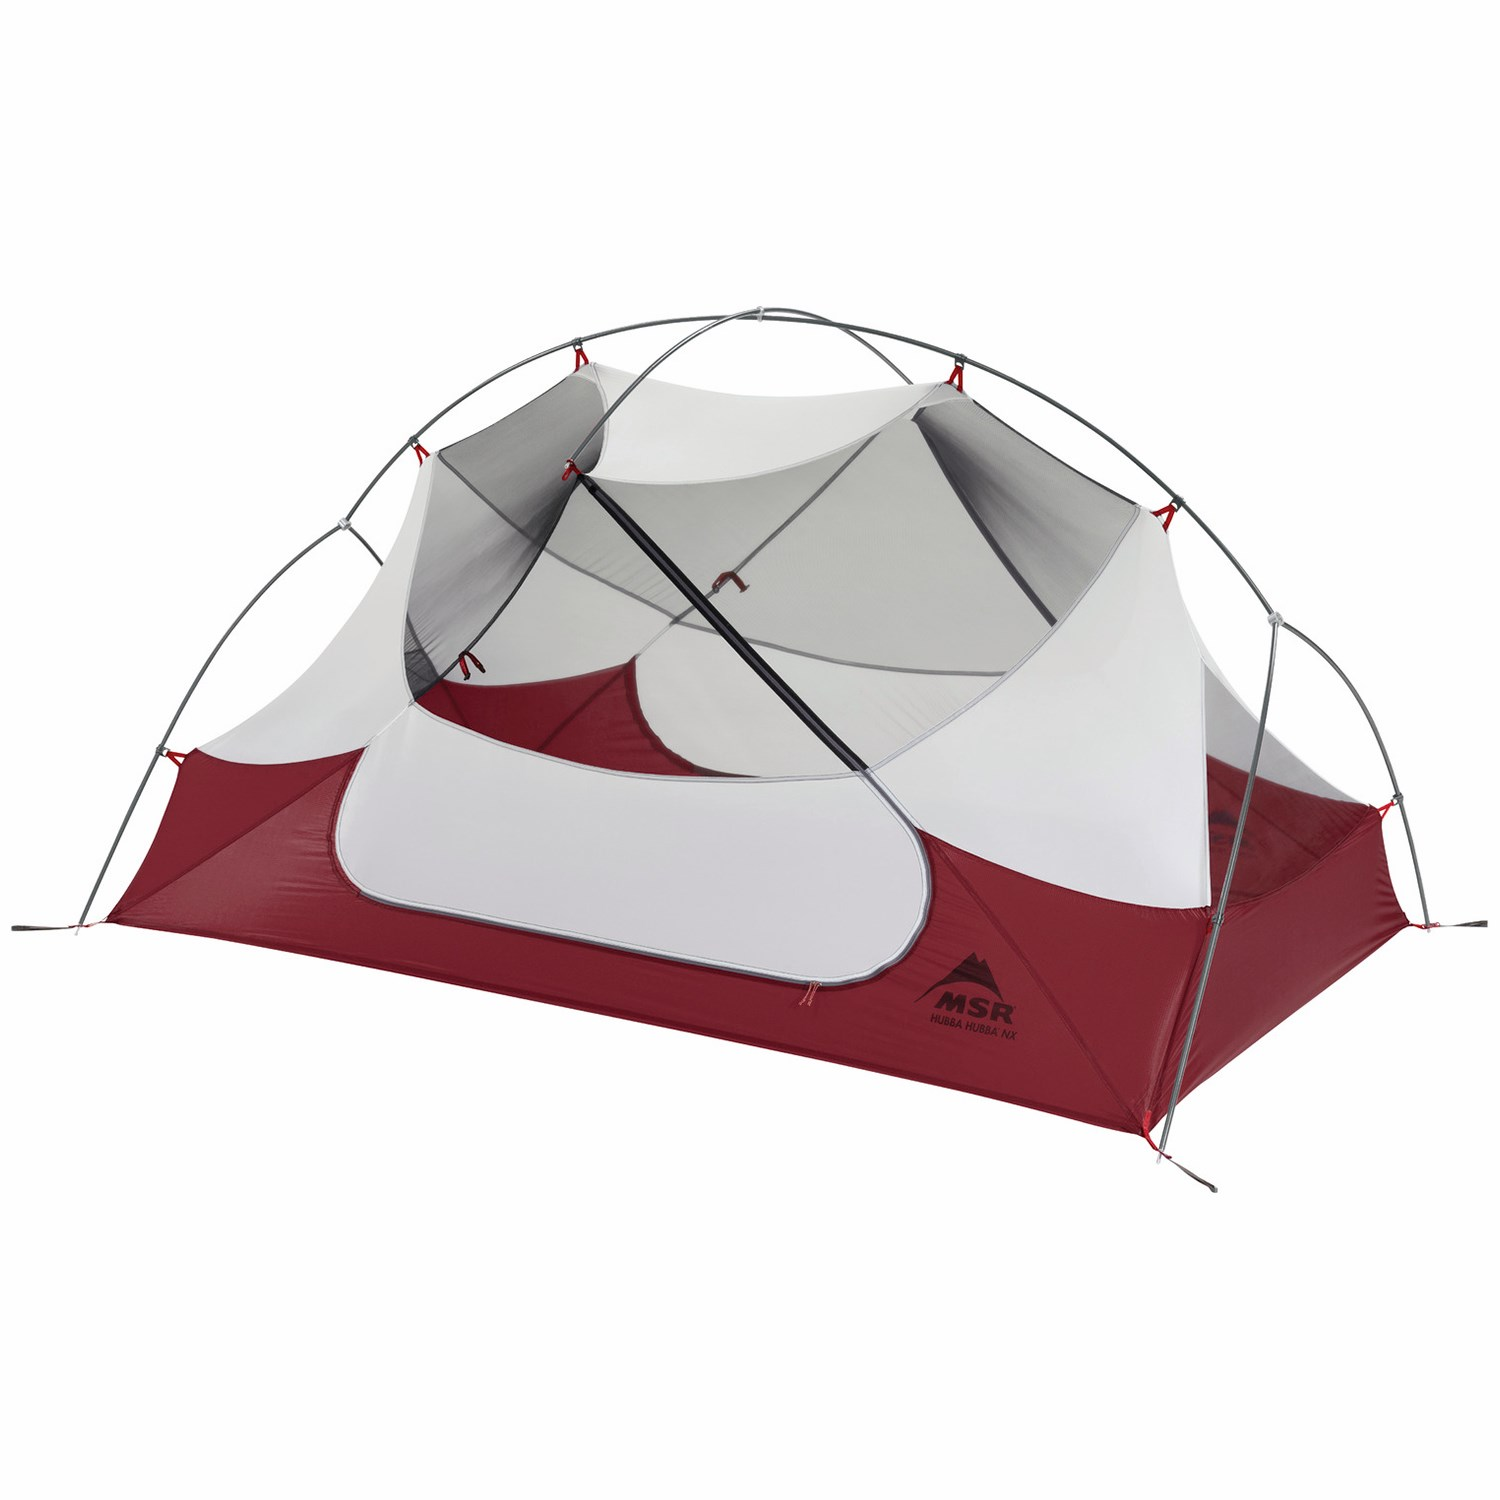 MSR Hubba Hubba NX Tent 2021 in Red